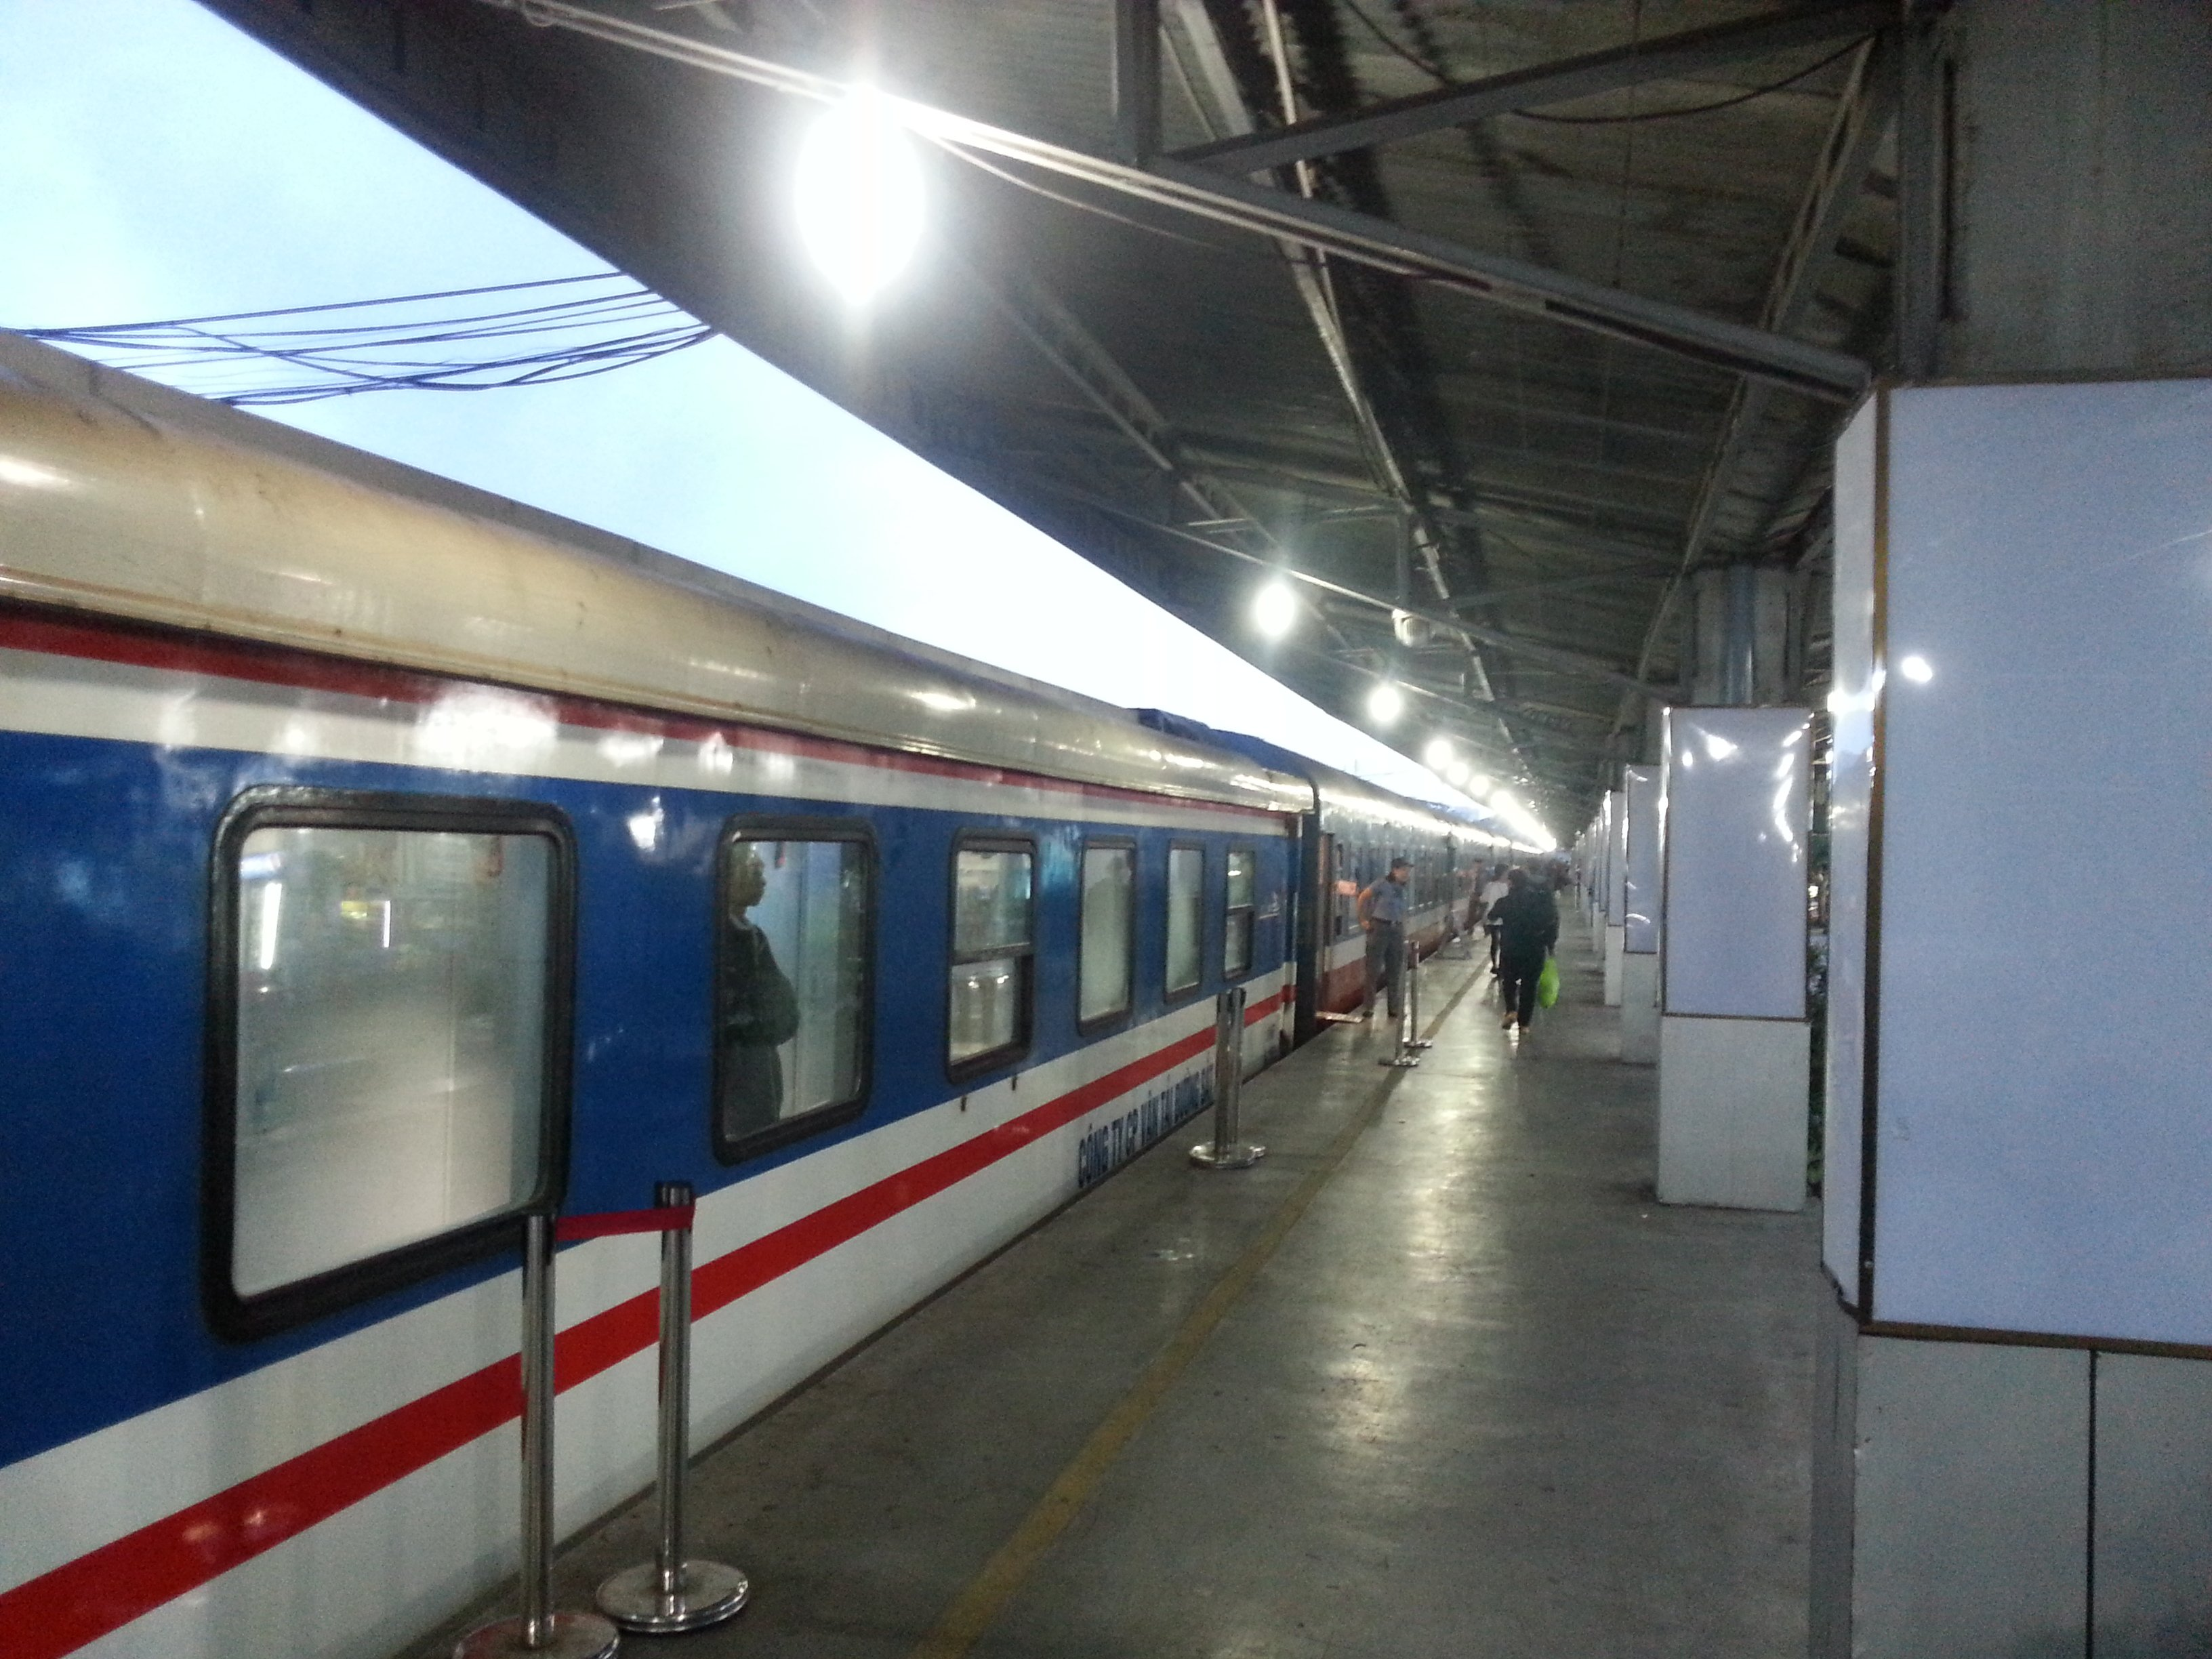 Vietnam train getting ready to depart